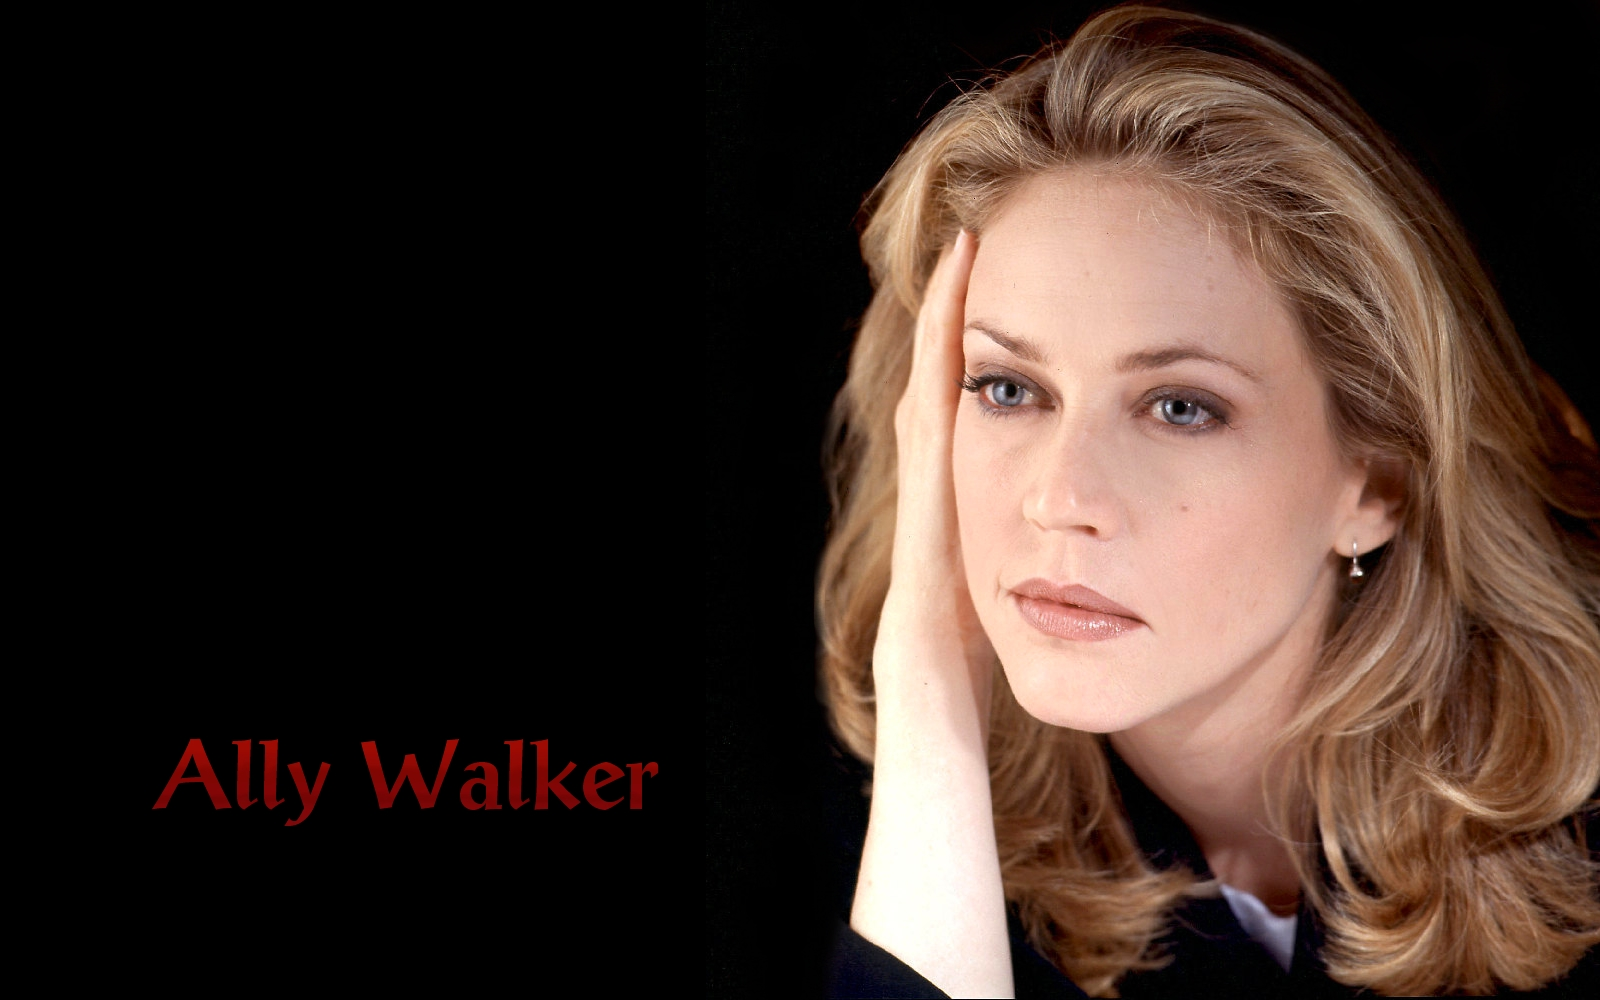 ally walker dailymotionally walker sons of anarchy, ally walker universal soldier, ally walker young, ally walker actress, ally walker instagram, ally walker interview, ally walker santa barbara, ally walker biography, ally walker net worth, ally walker wikipedia, ally walker, ally walker imdb, ally walker longmire, ally walker wiki, ally walker dailymotion, ally walker plastic surgery